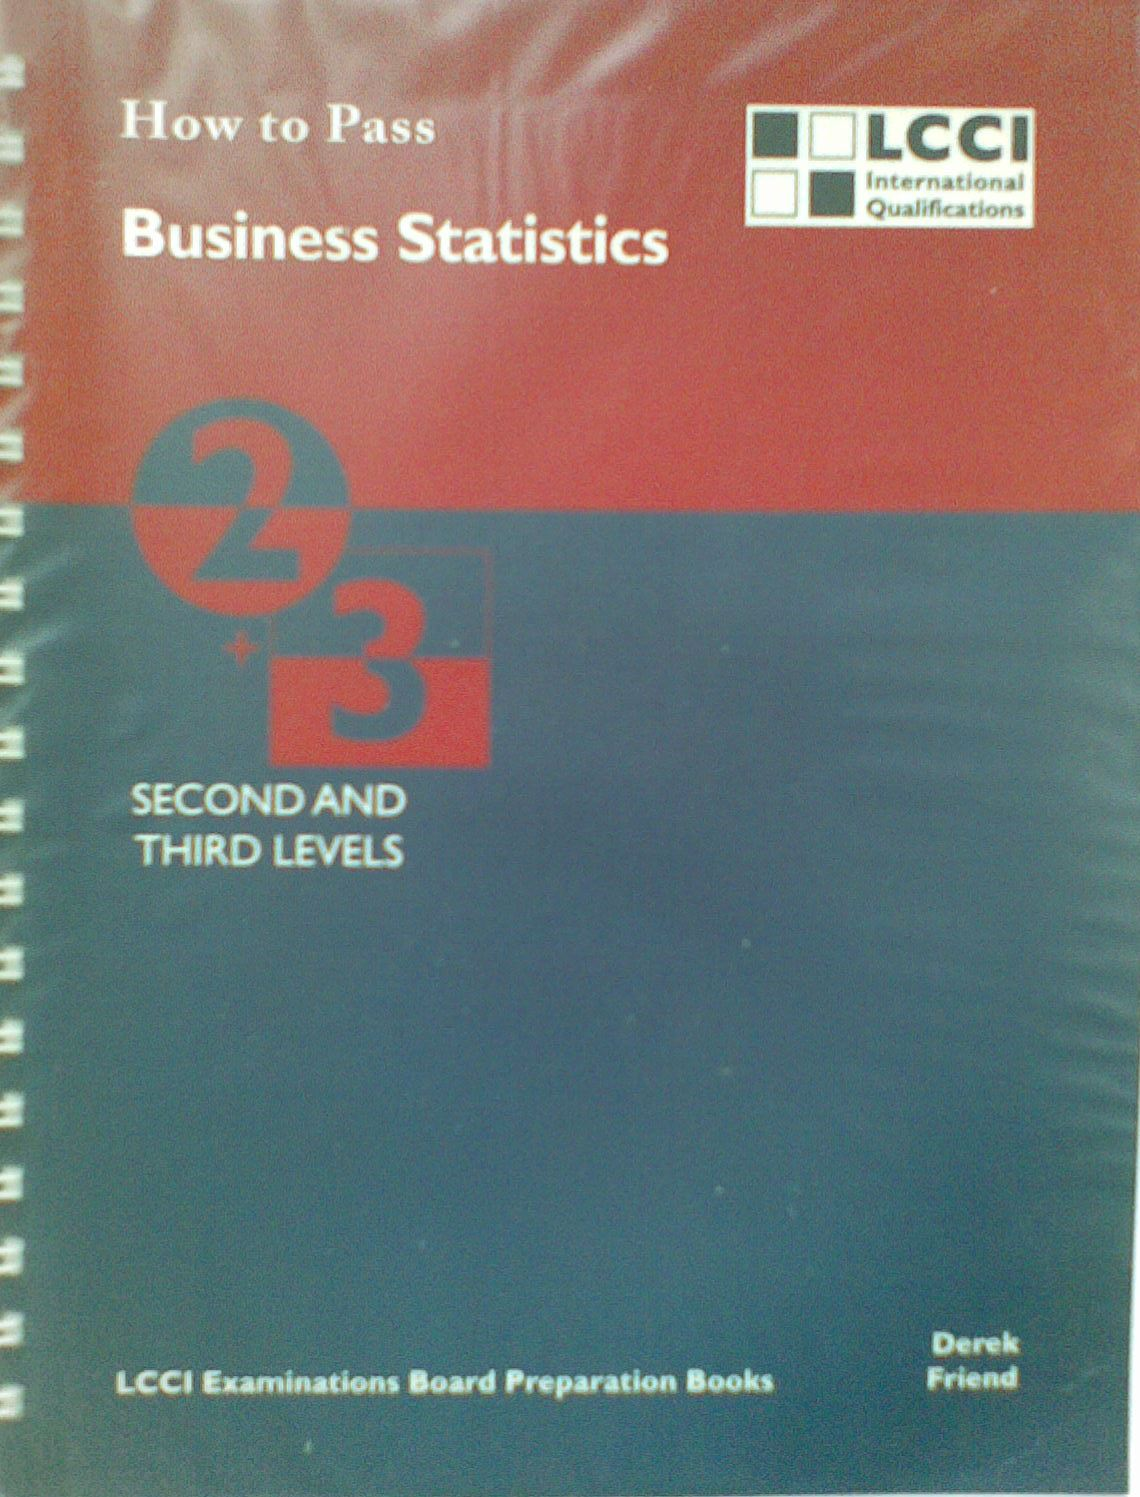 How to Pass Business Statistics, Second and Third Level